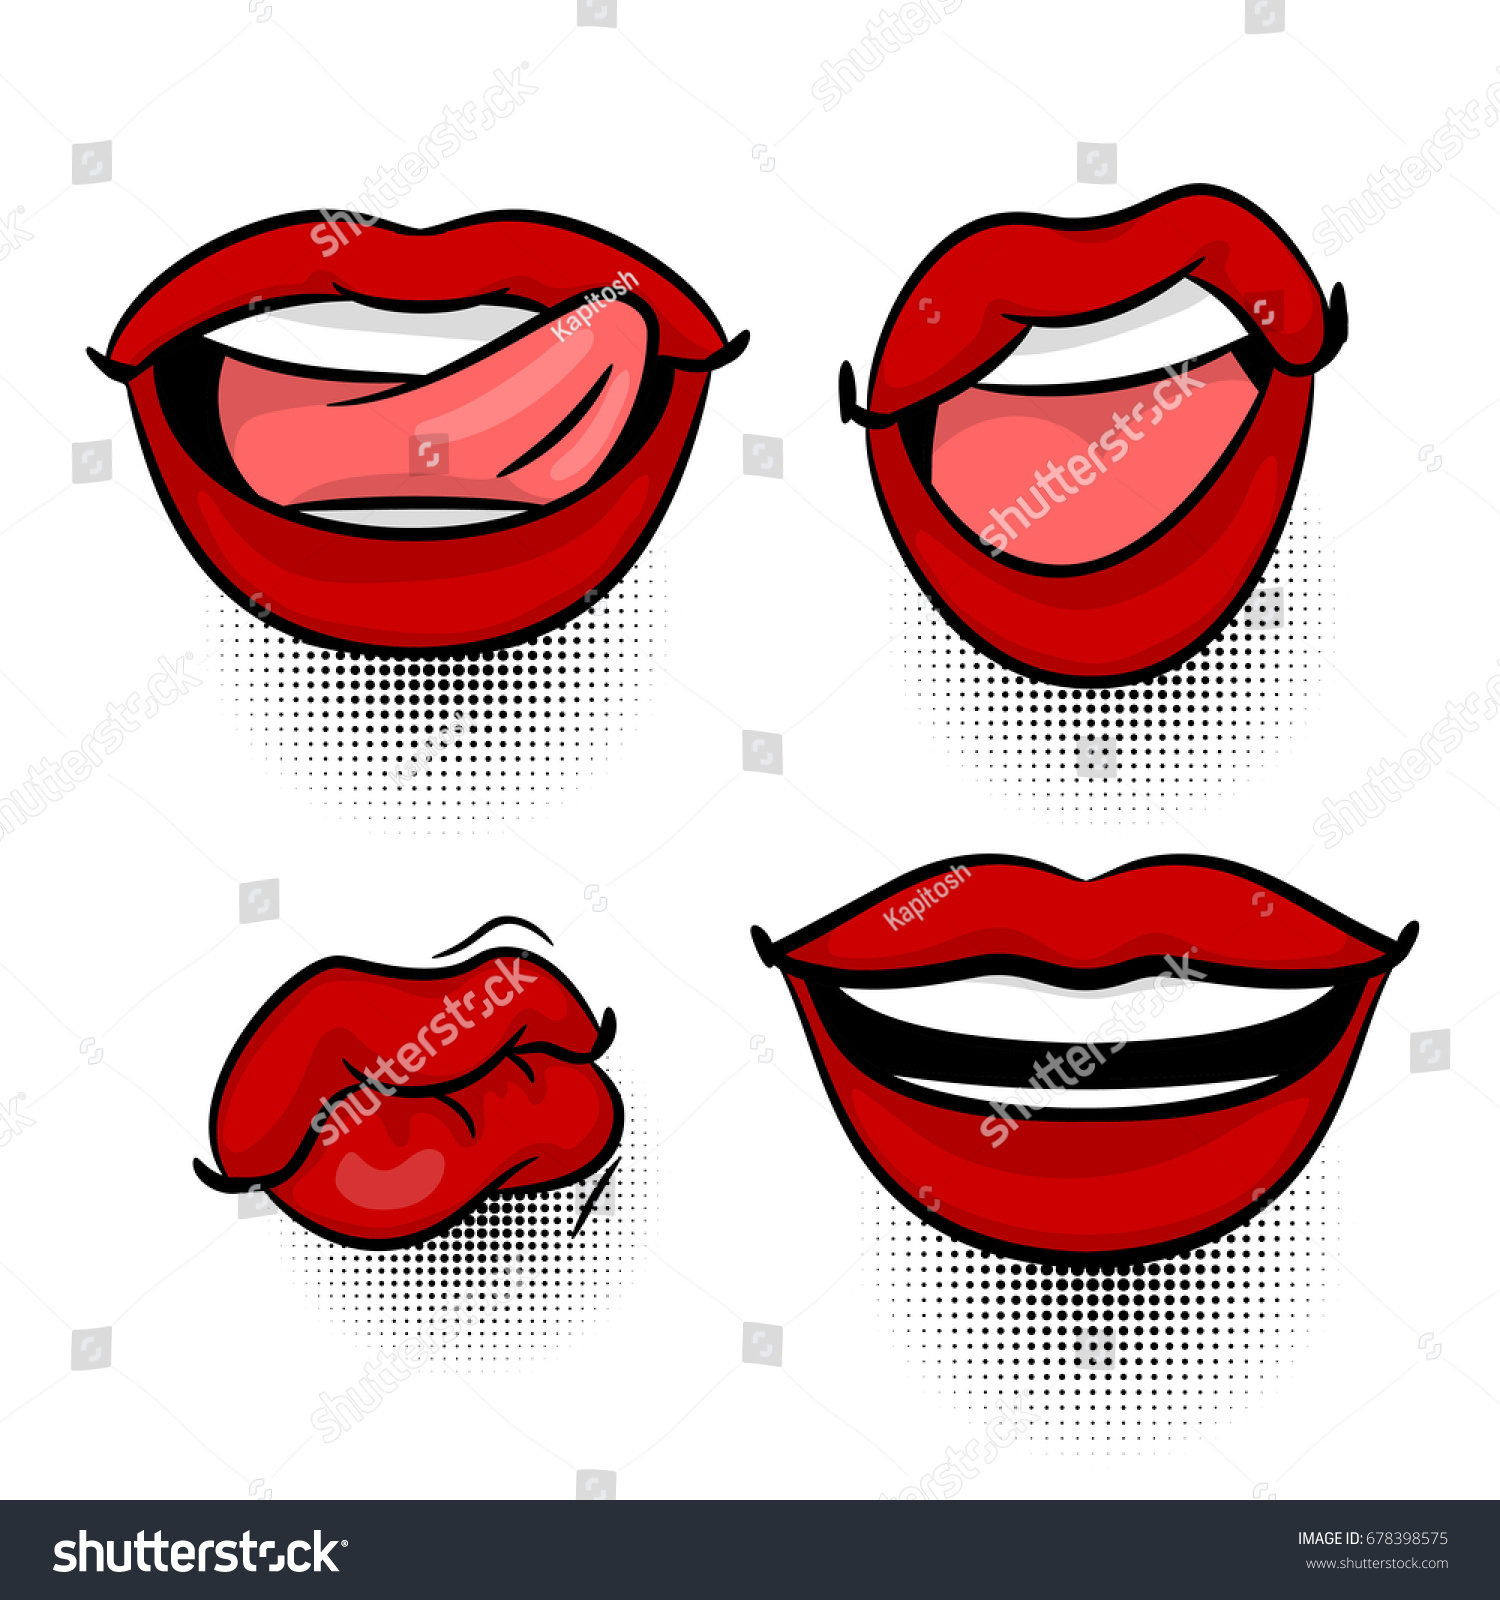 hight resolution of comics book girl face body part kitch cartoon girl lipstick label funny mood emotion